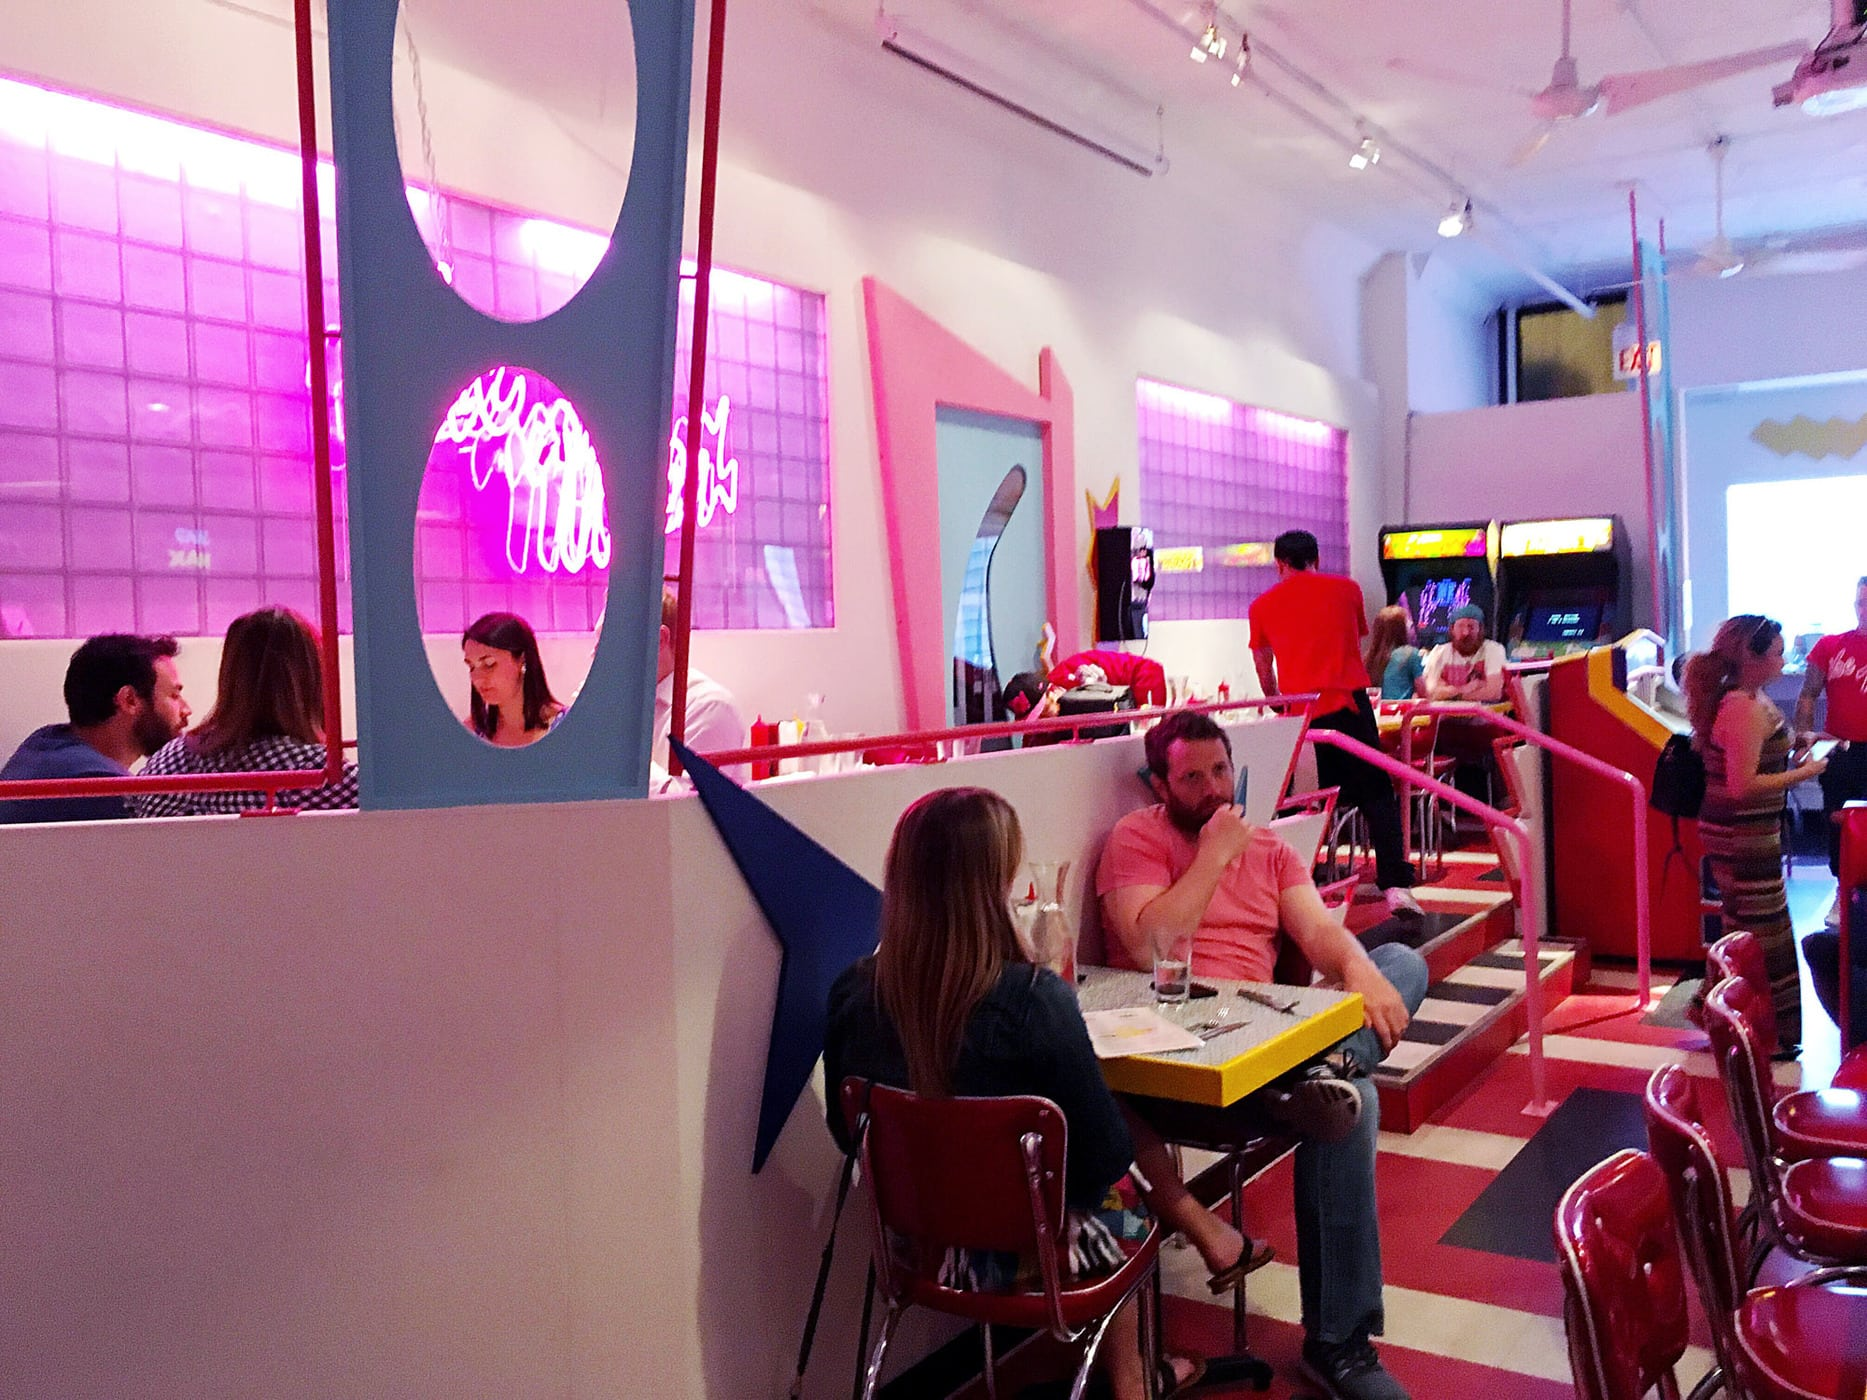 Saved by the Max - Saved by the Bell themed restaurant in Wicker Park, Chicago